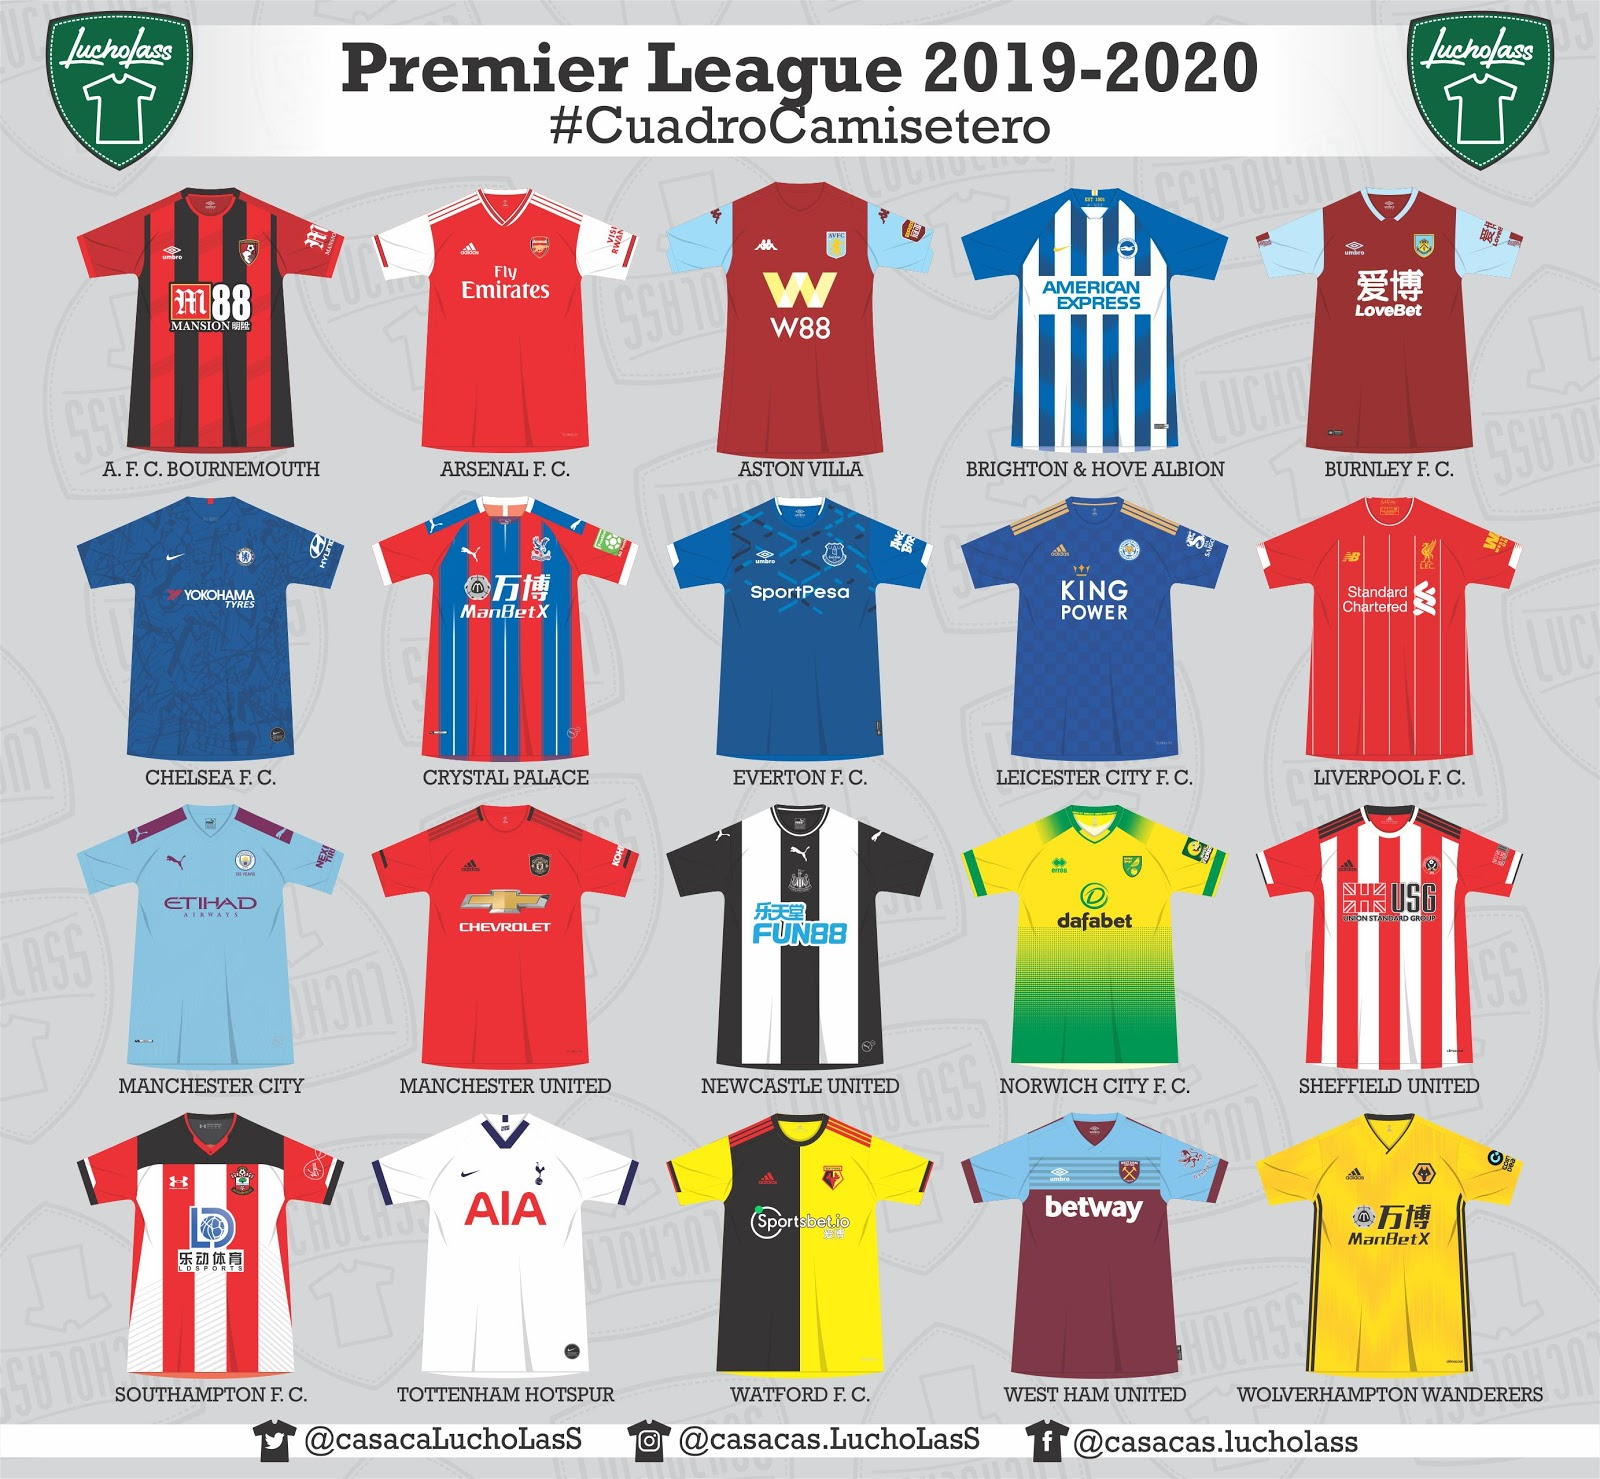 040b352ad65ce All 20 Home Kits In Detailed Illustrations - All 19-20 Premier League Kits  Leaked / Released So Far